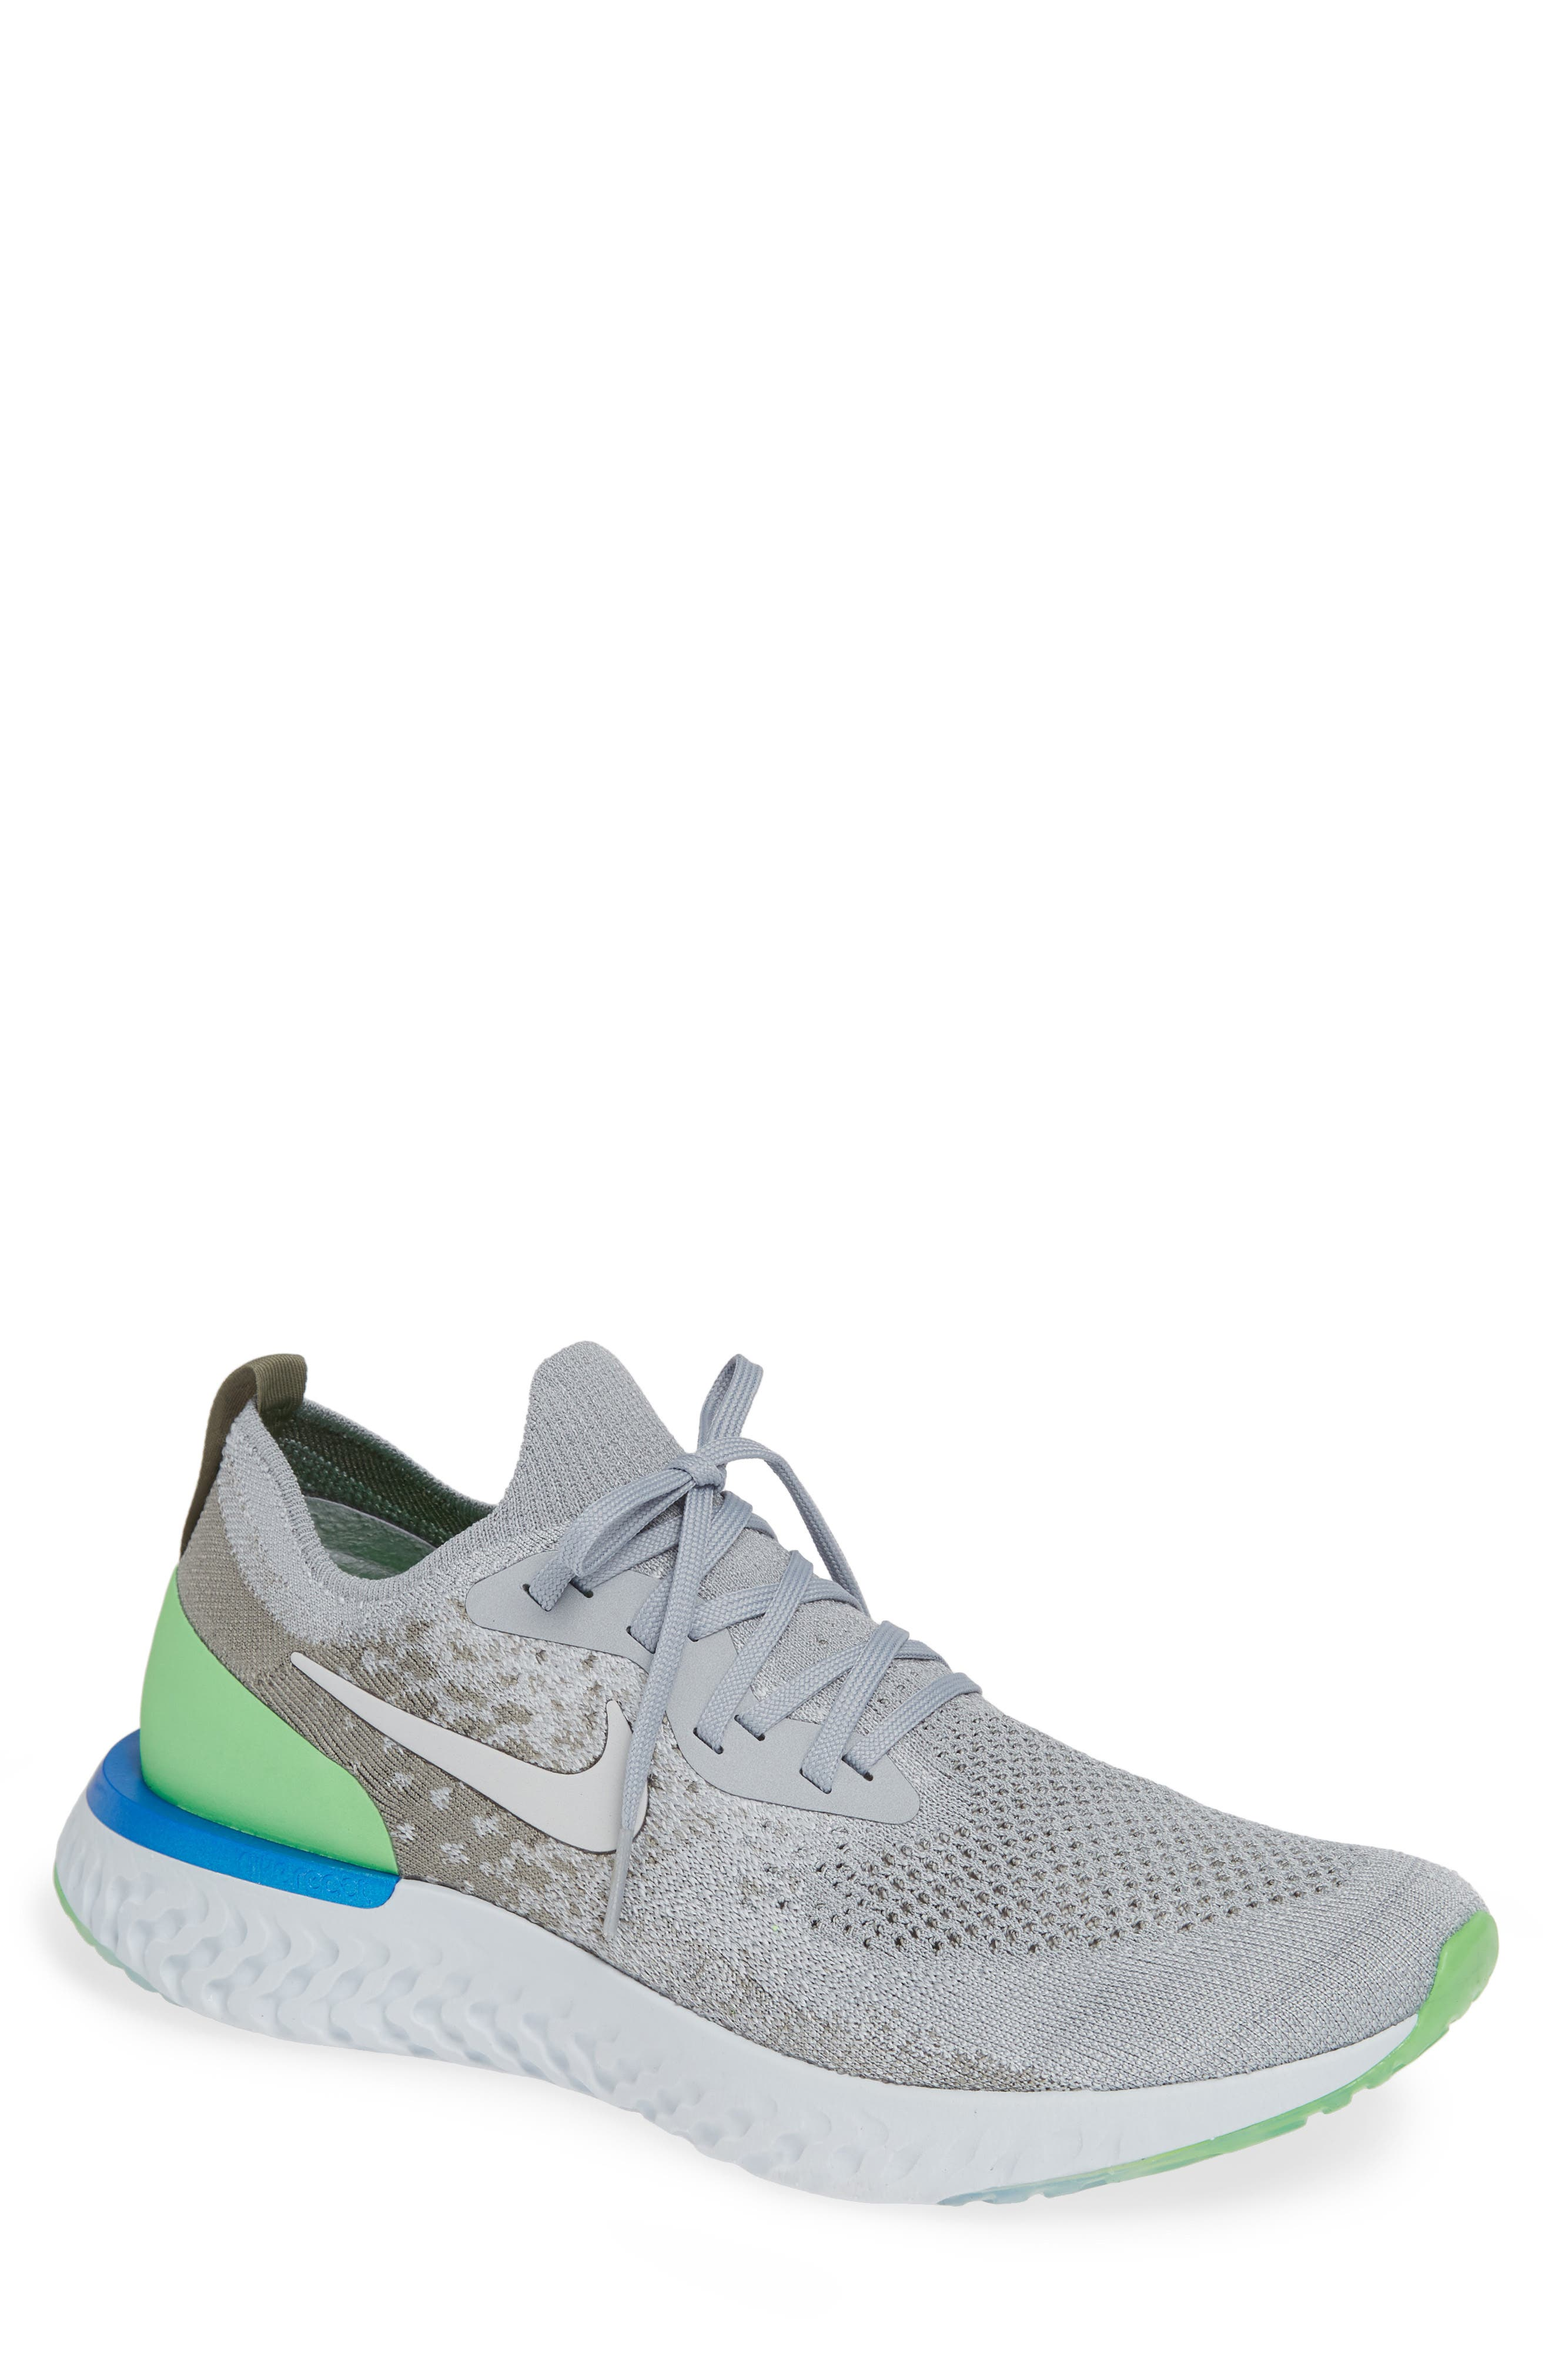 Epic React Flyknit Running Shoe,                         Main,                         color, GREY